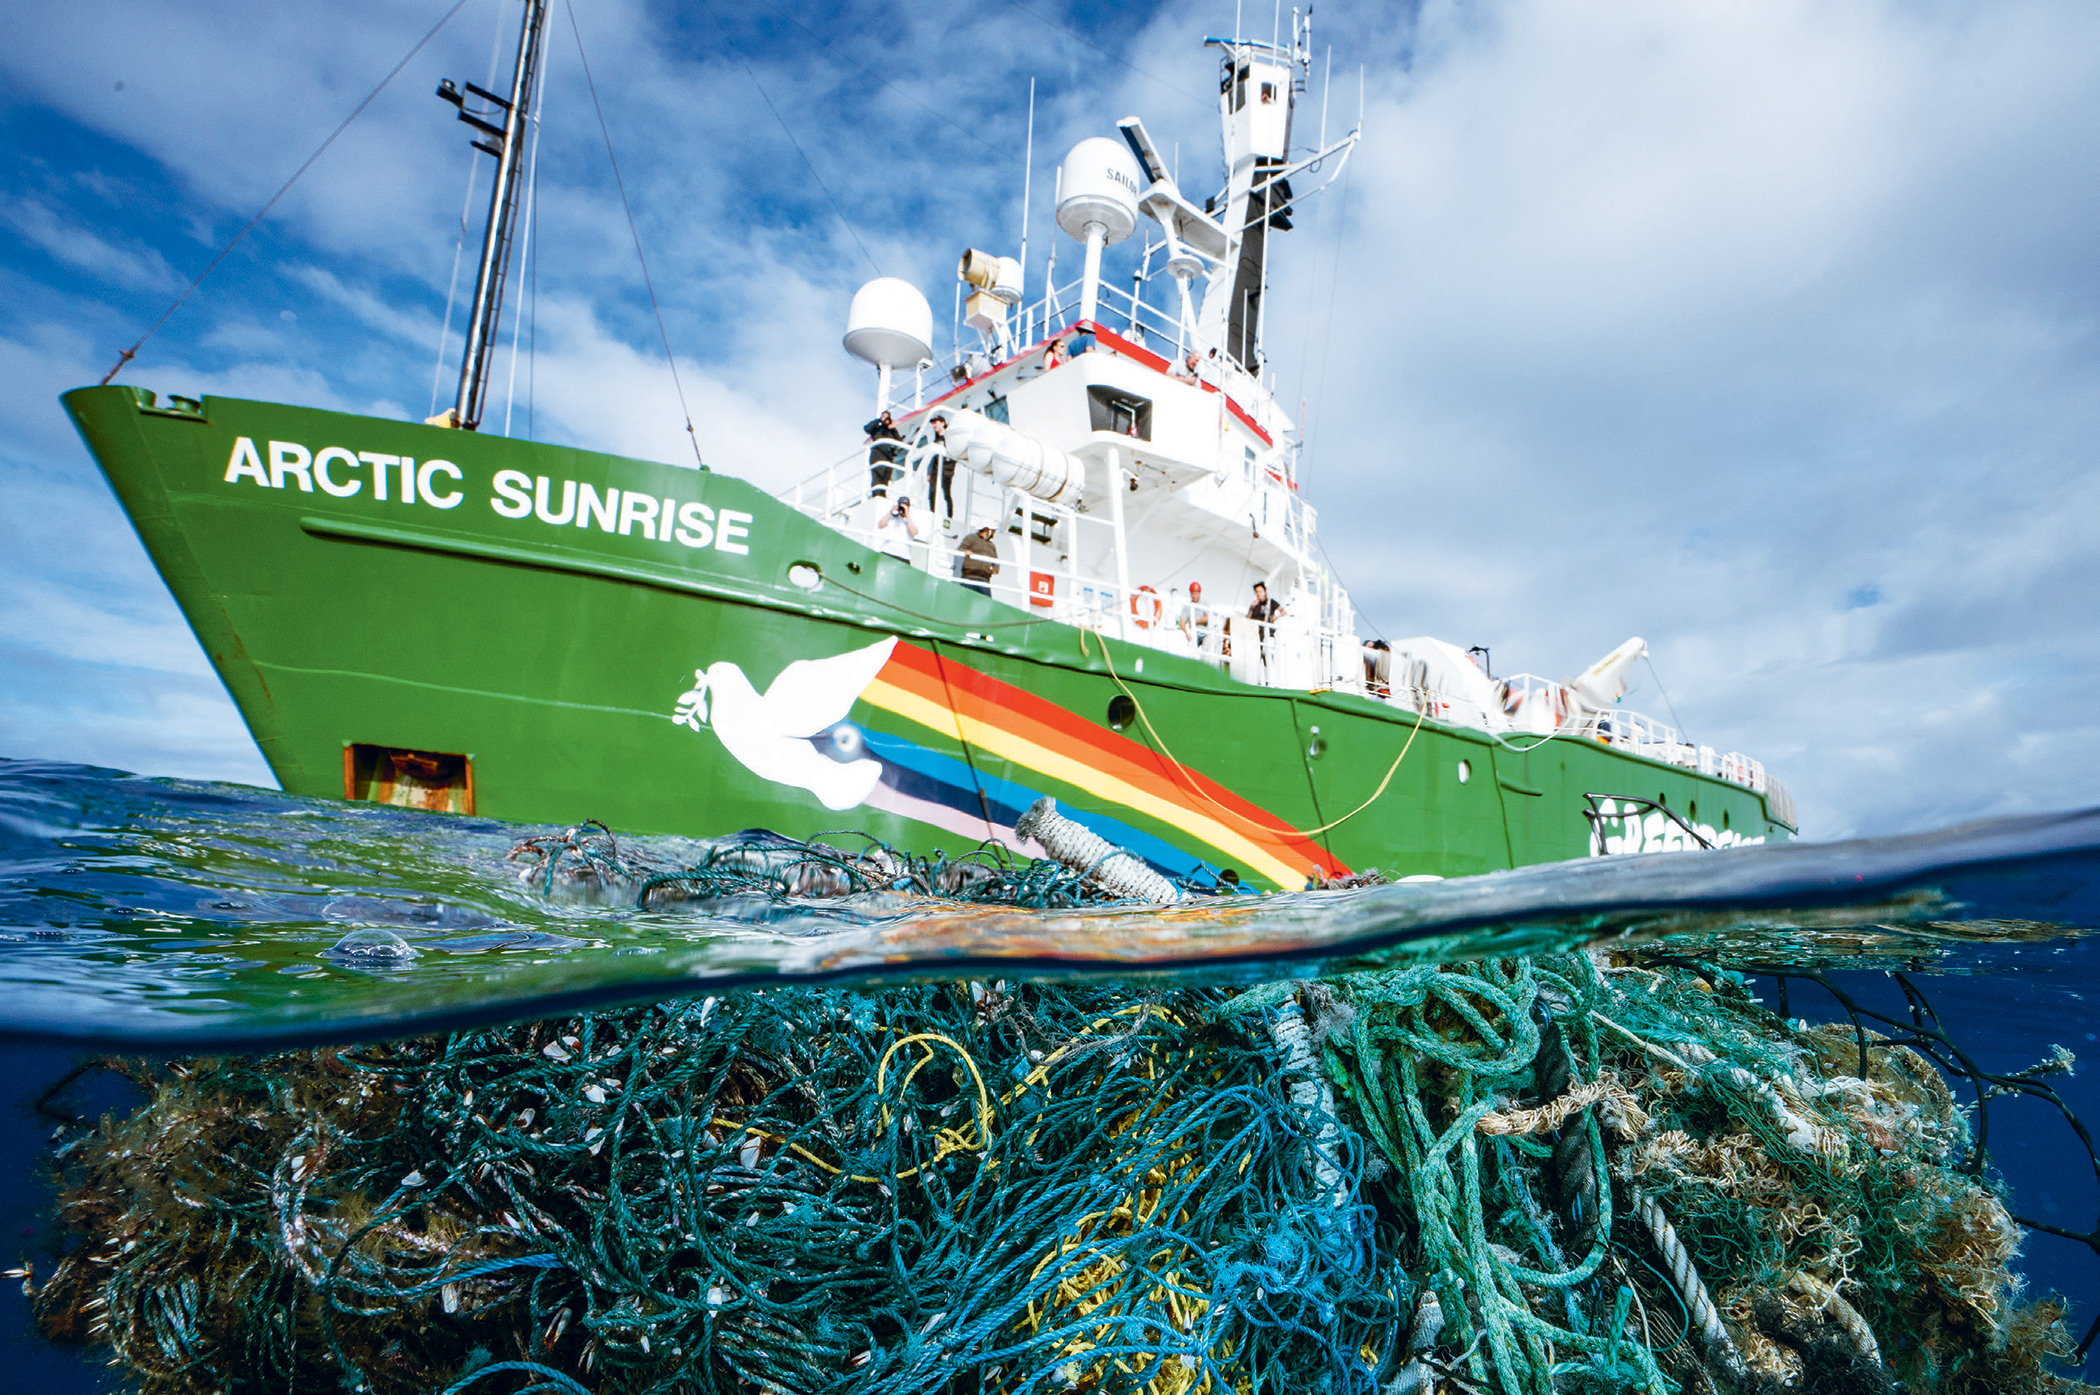 The rubbish that's visible near the surface is just part of the problem of ocean abuse – and planned future exploitation.